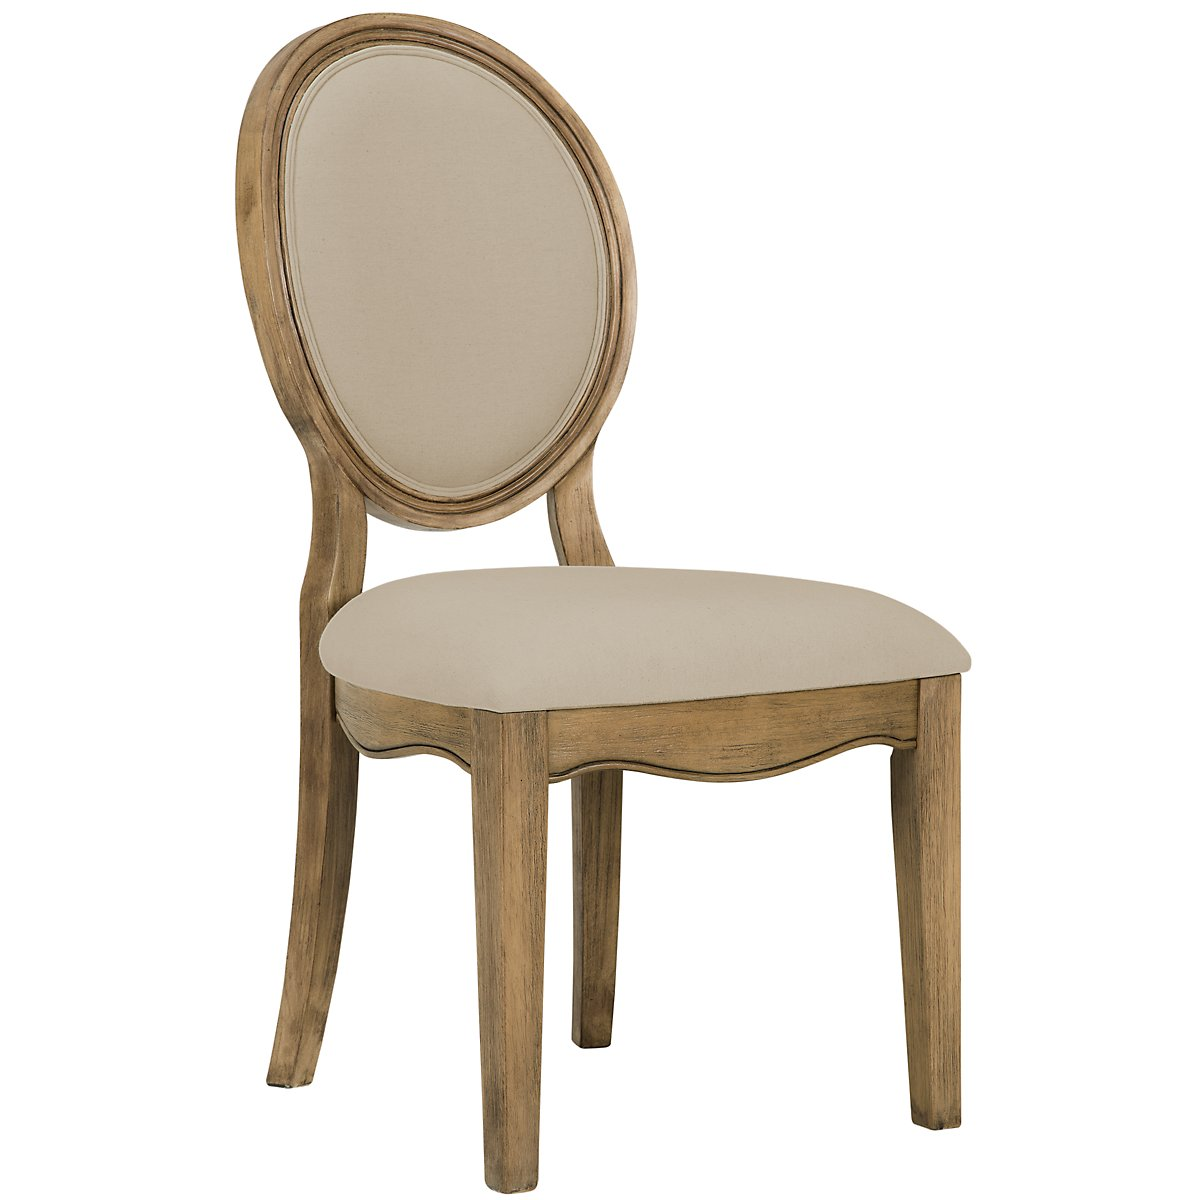 Shelbourne2 Mid Tone Round Upholstered Side Chair